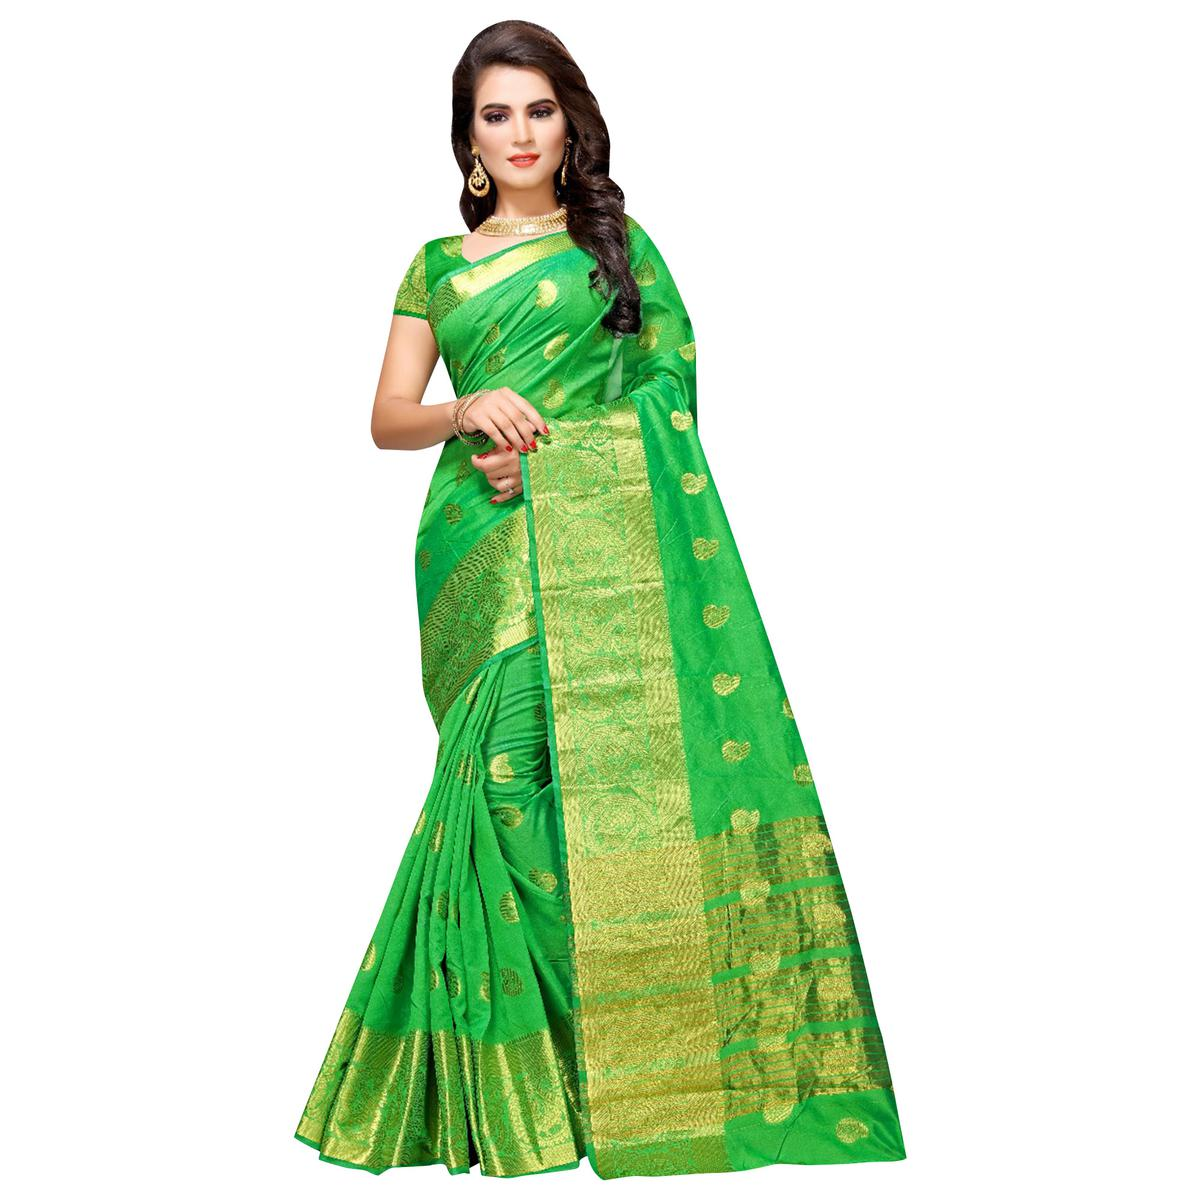 Glowing Green Colored Festive Wear Woven Cotton Silk Saree